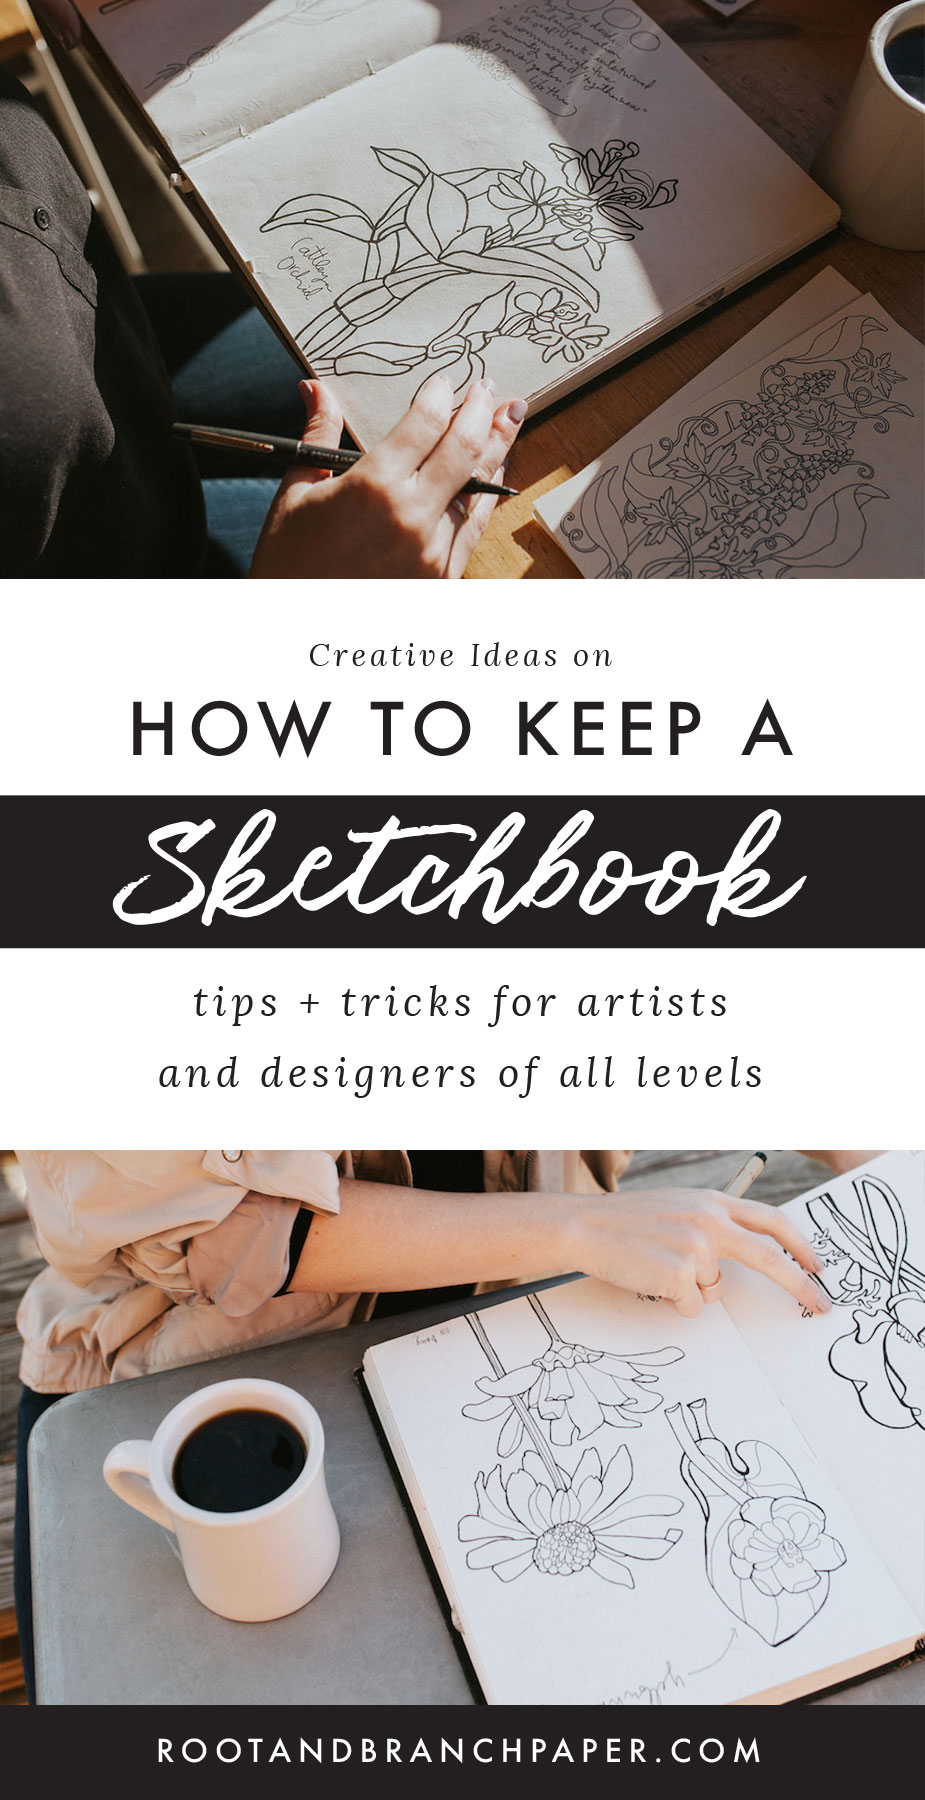 How to Keep a Sketchbook | 10+ Creative Sketchbook Journal Ideas, Tips and Tricks for Artists of All Levels on What to Put in a Sketchbook from Root & Branch Paper Co.